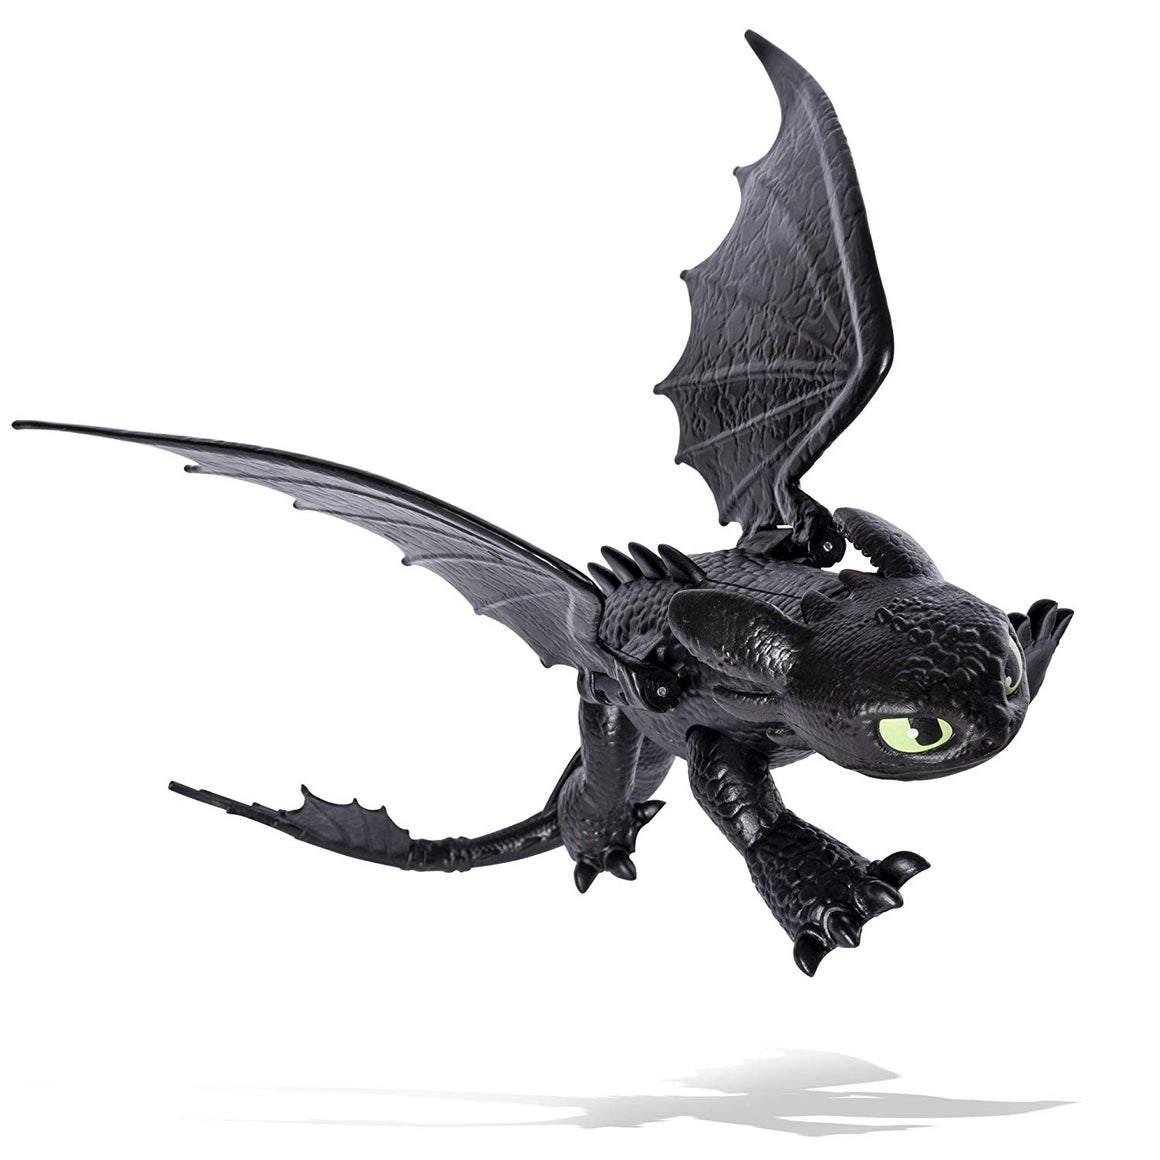 How To Train Your Dragon Toothless Figure by Spin Master